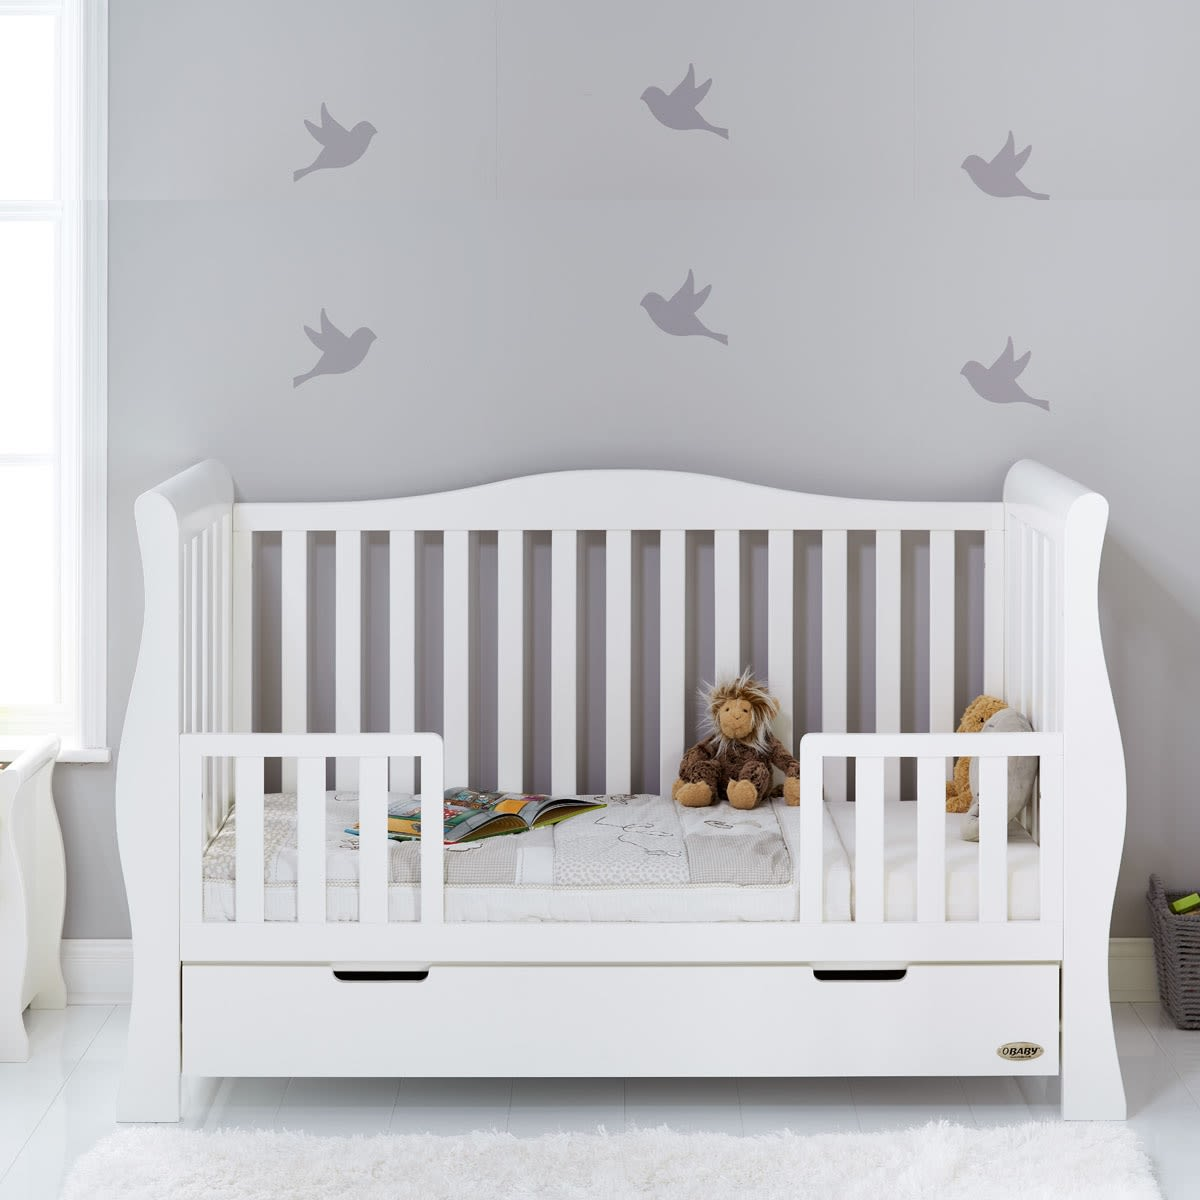 Furniture Stores Stamford: Stamford Luxe Sleigh Cot Bed Was £549.99 Now £449.99